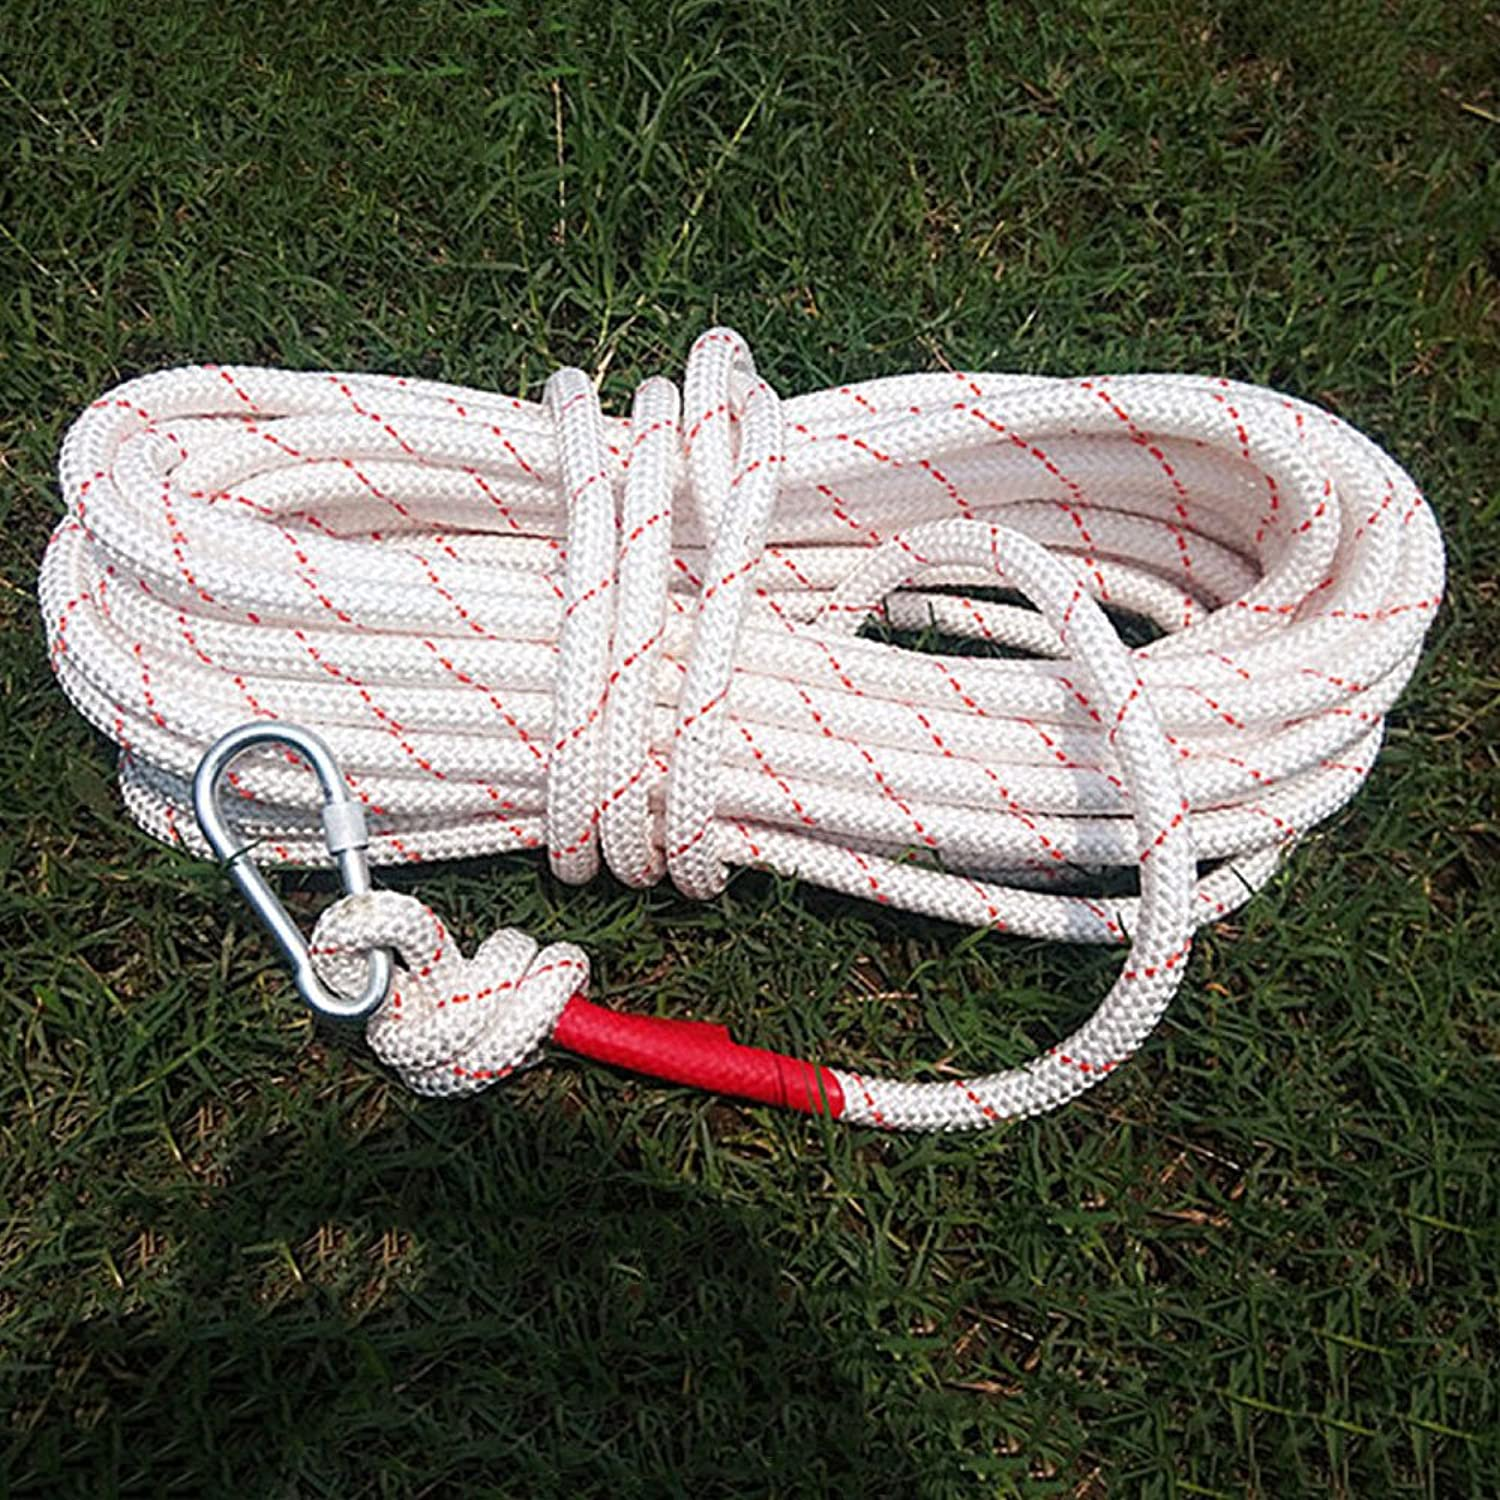 Rock Climbing Rope HighRise Escape Rope Emergency Wire Core Climbing Rope Outdoor Supplies,White+Red50m16mm